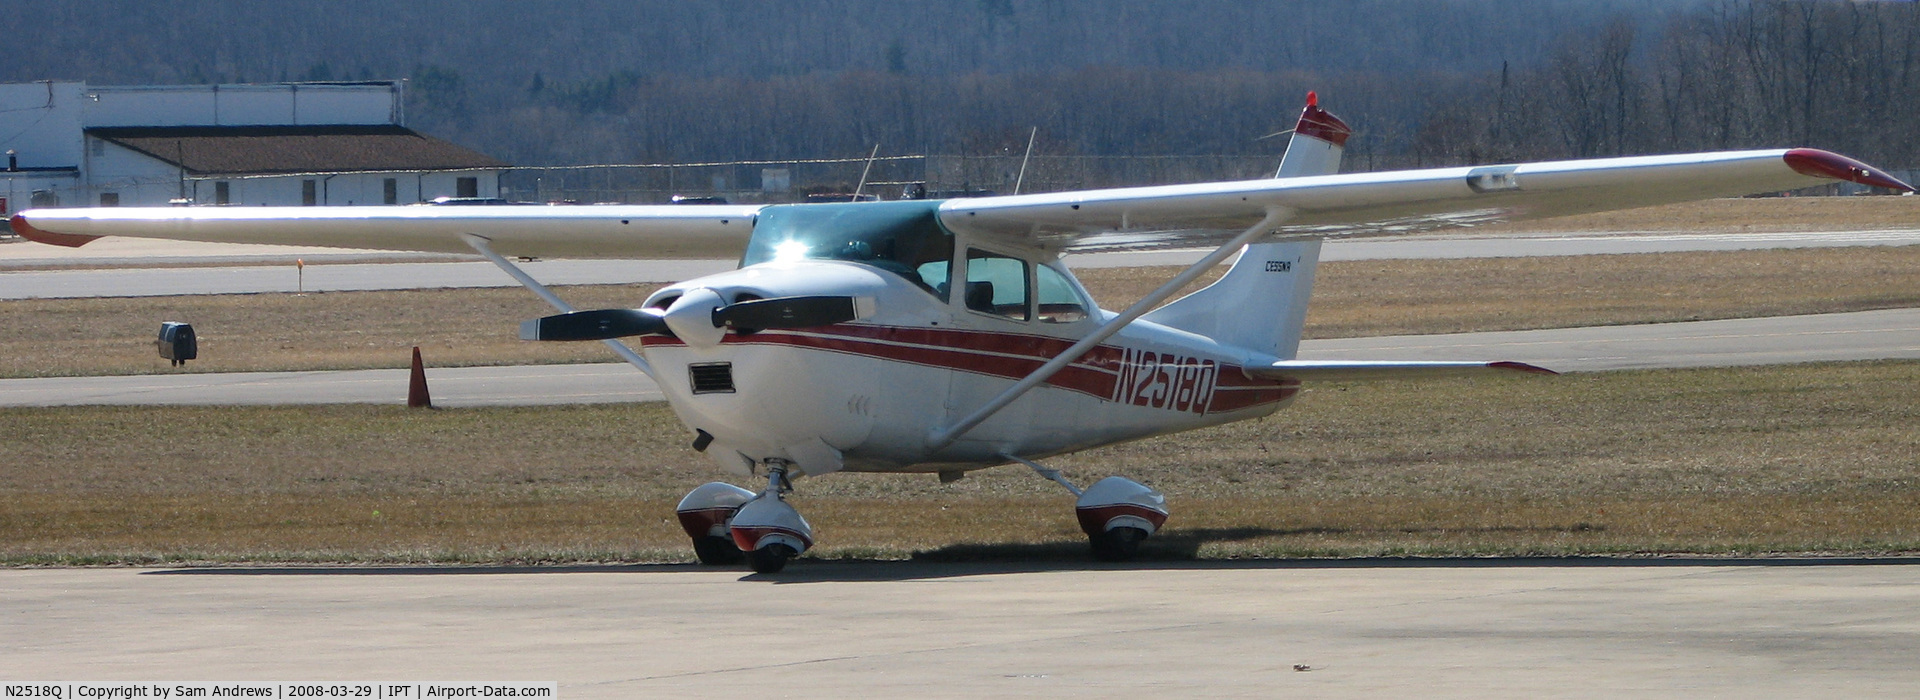 N2518Q, 1966 Cessna 182K Skylane C/N 18257718, IN town for something!  I don't know what.